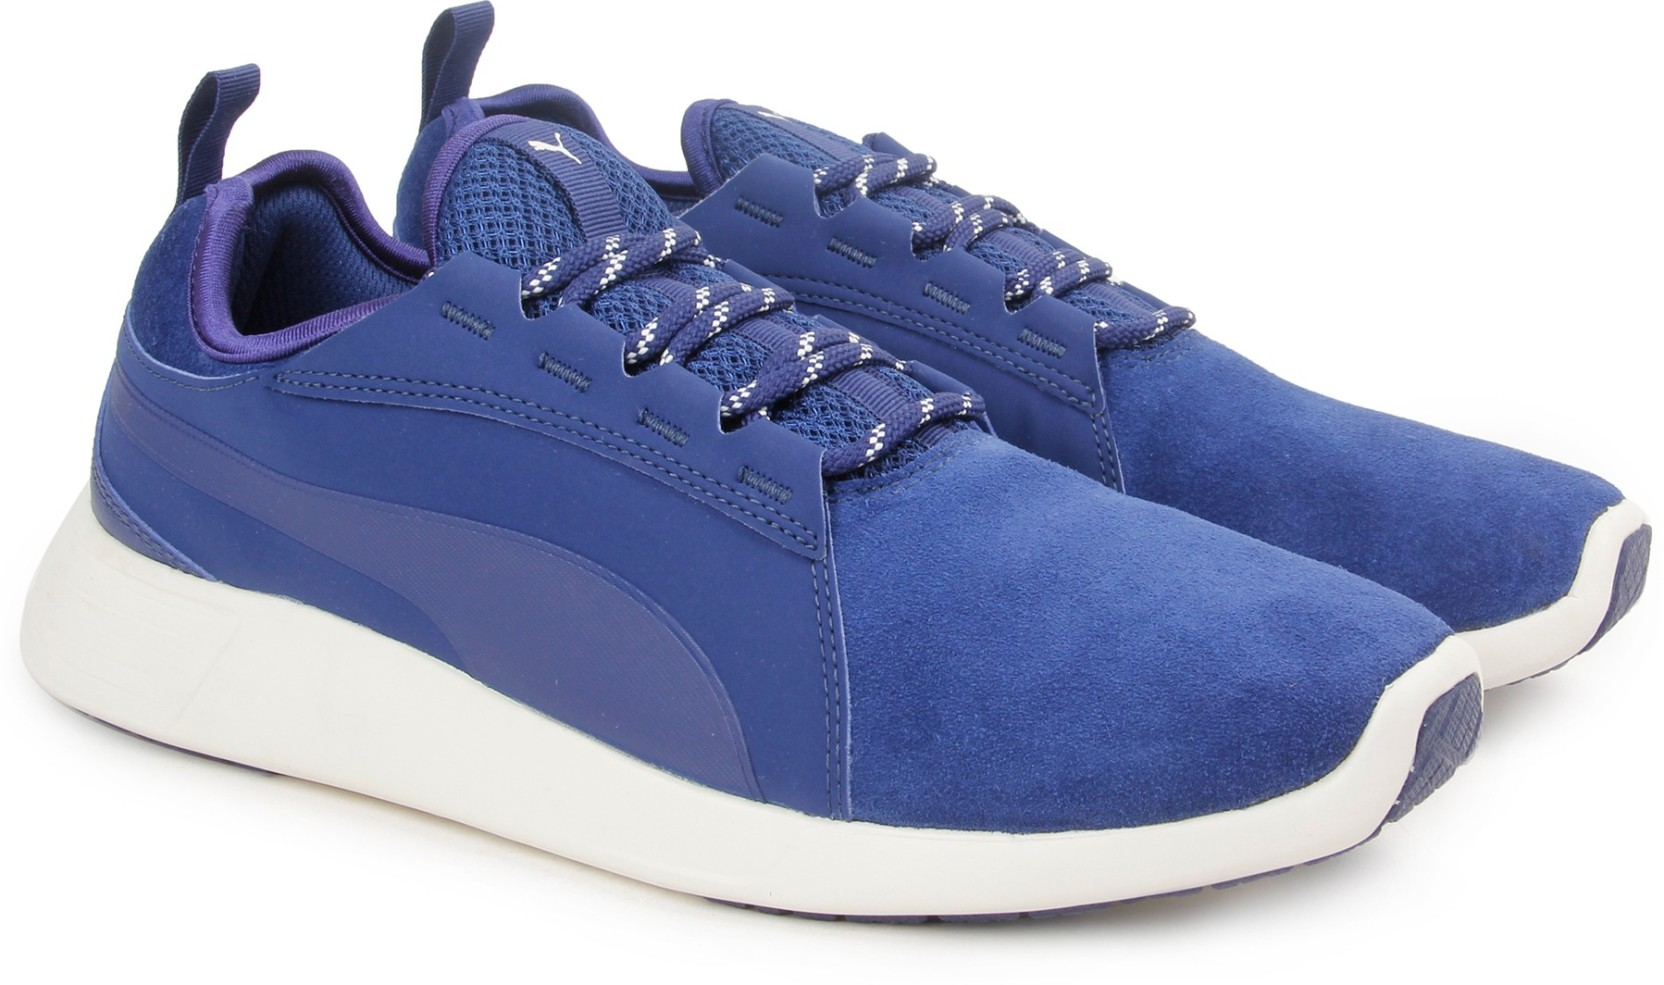 6d00513ef134 Puma ST Trainer Evo SD v2 Sneakers For Men - Buy Blue DepthsBlue ...